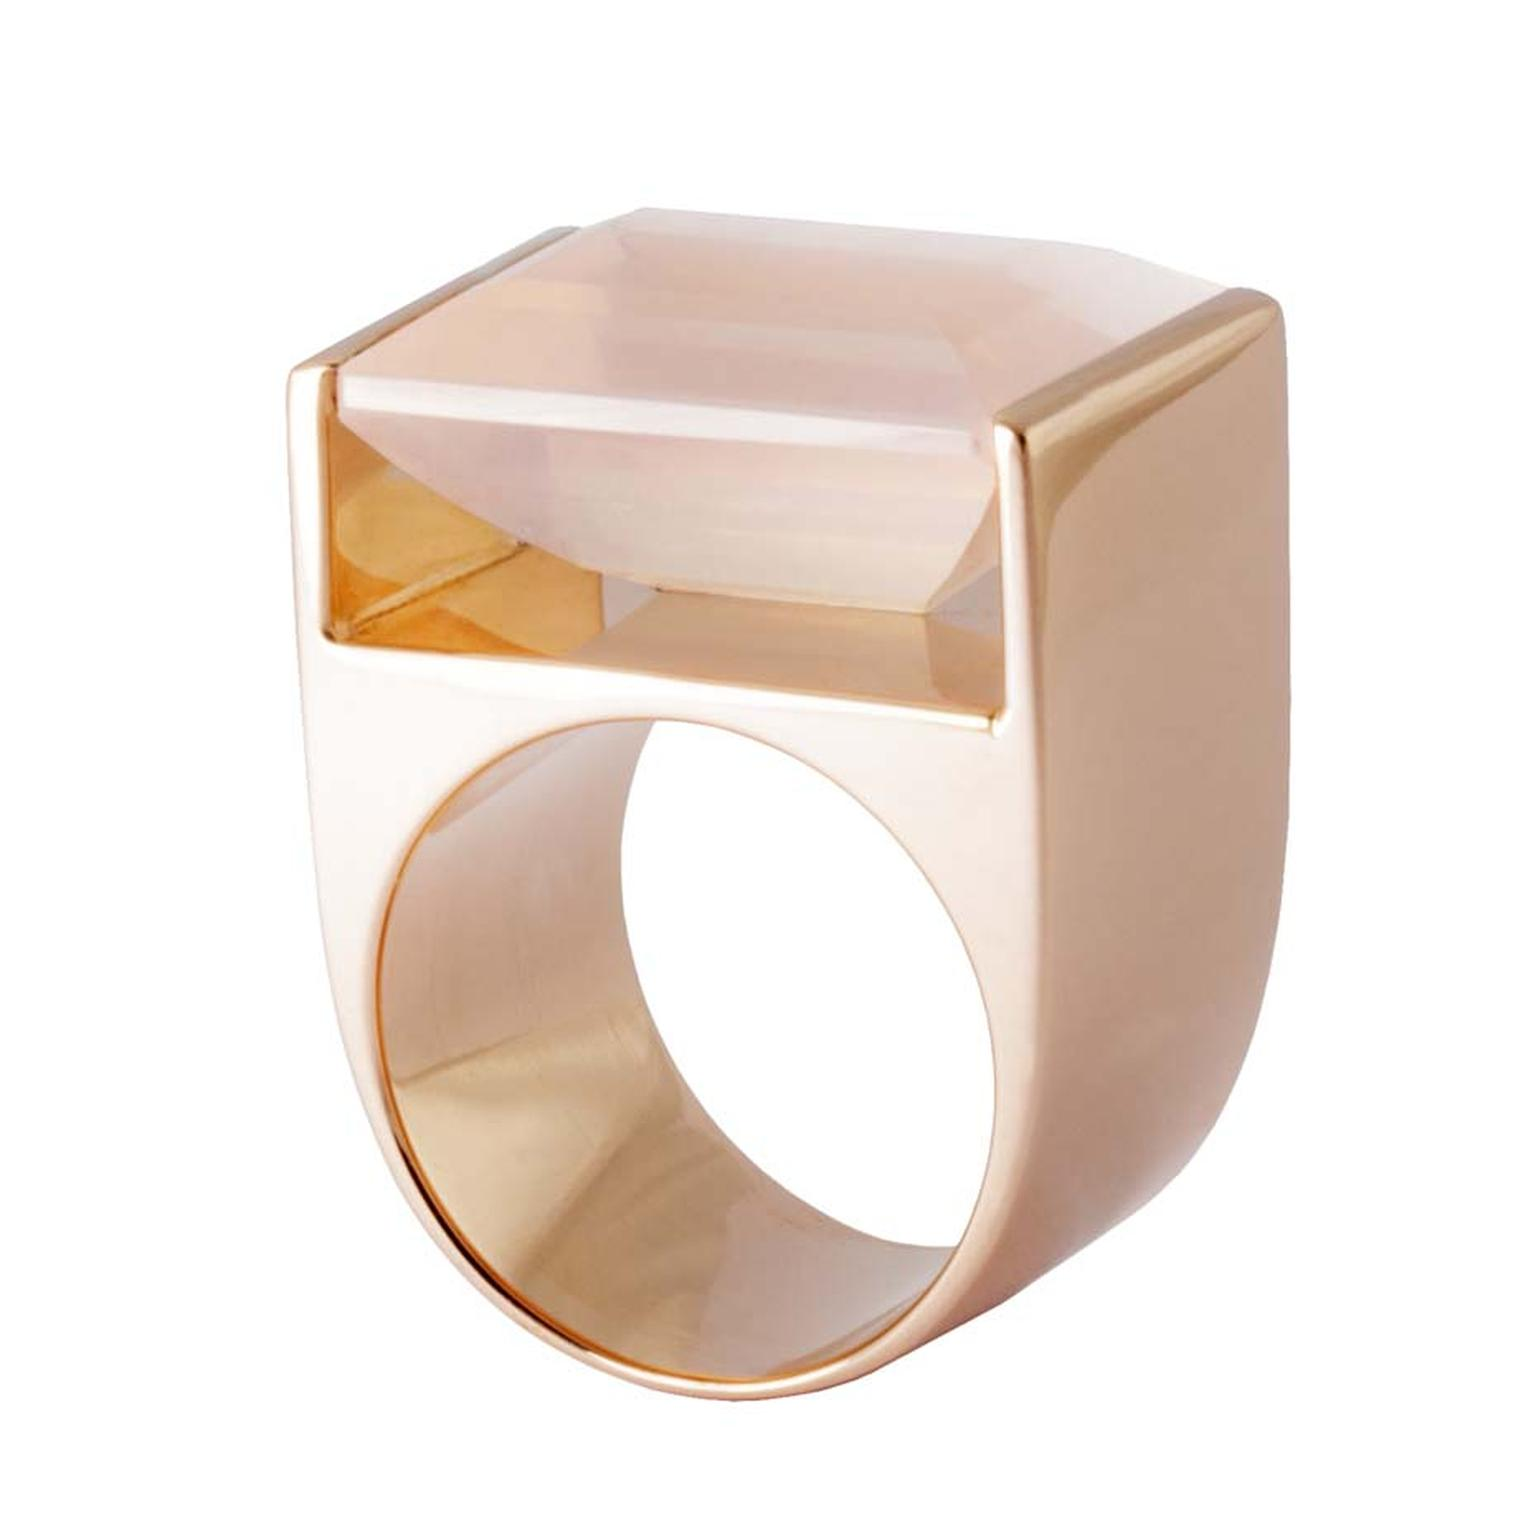 Kattri Quadrant rose gold and rose quartz ring (£4,900).